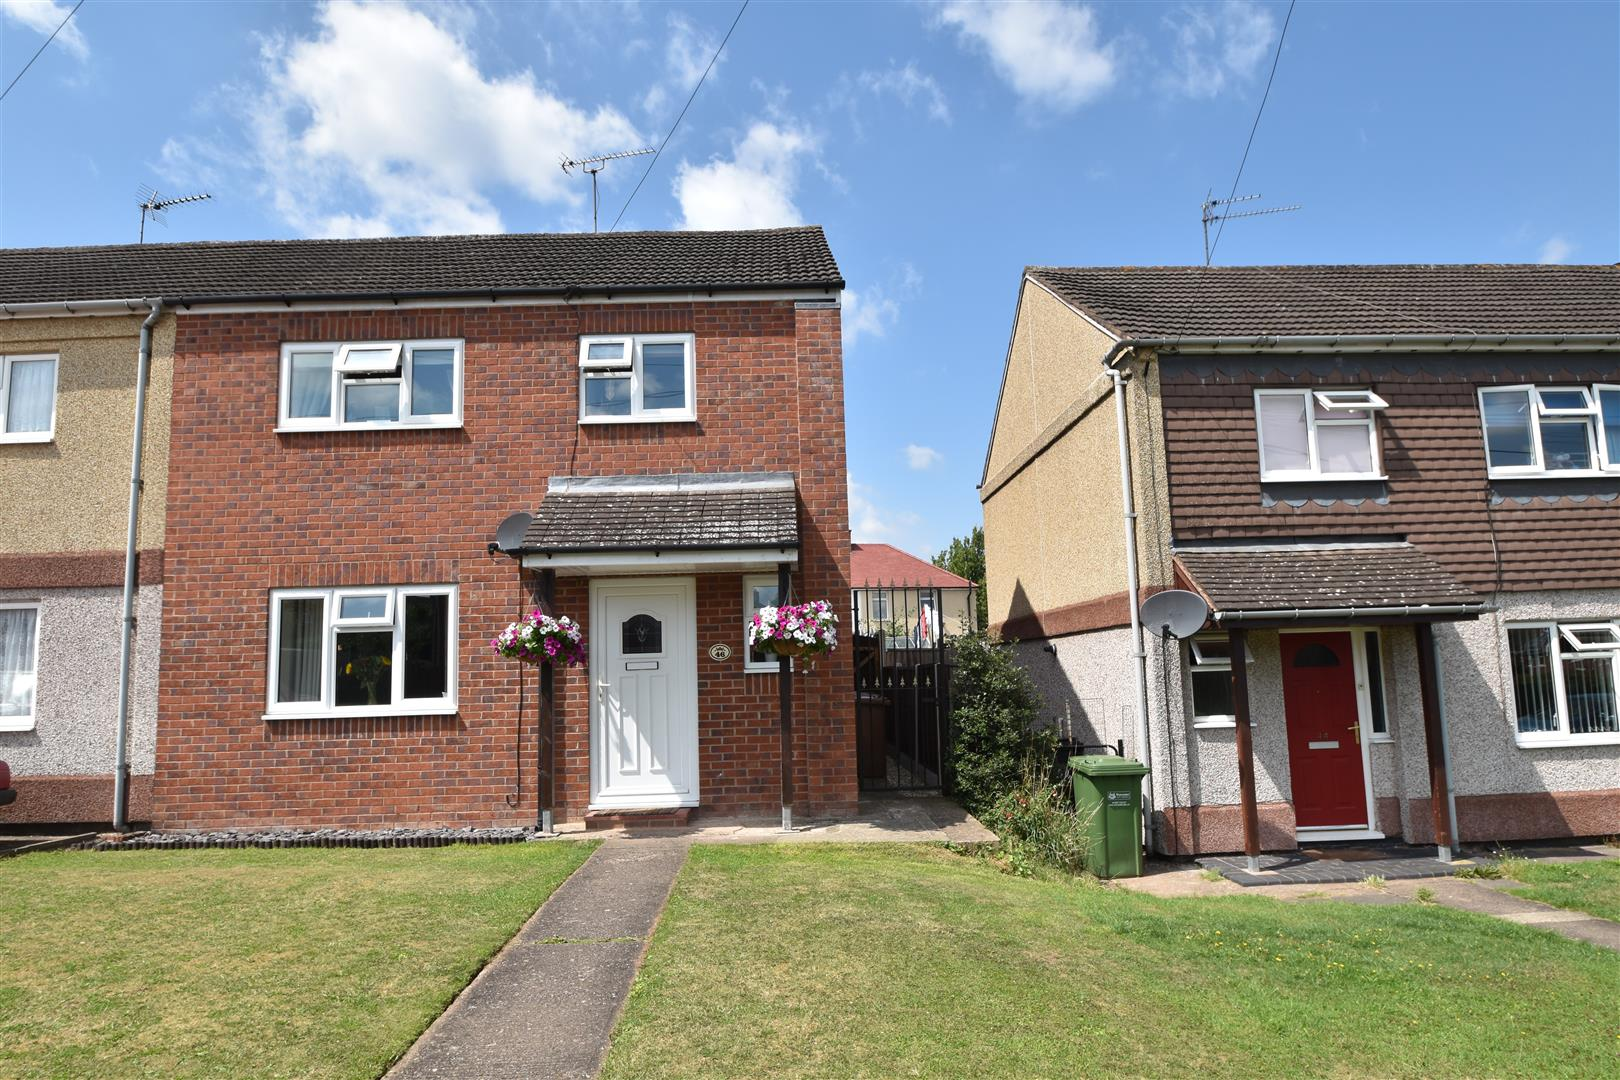 3 Bedrooms End Of Terrace House for sale in Rydal Close, Worcester